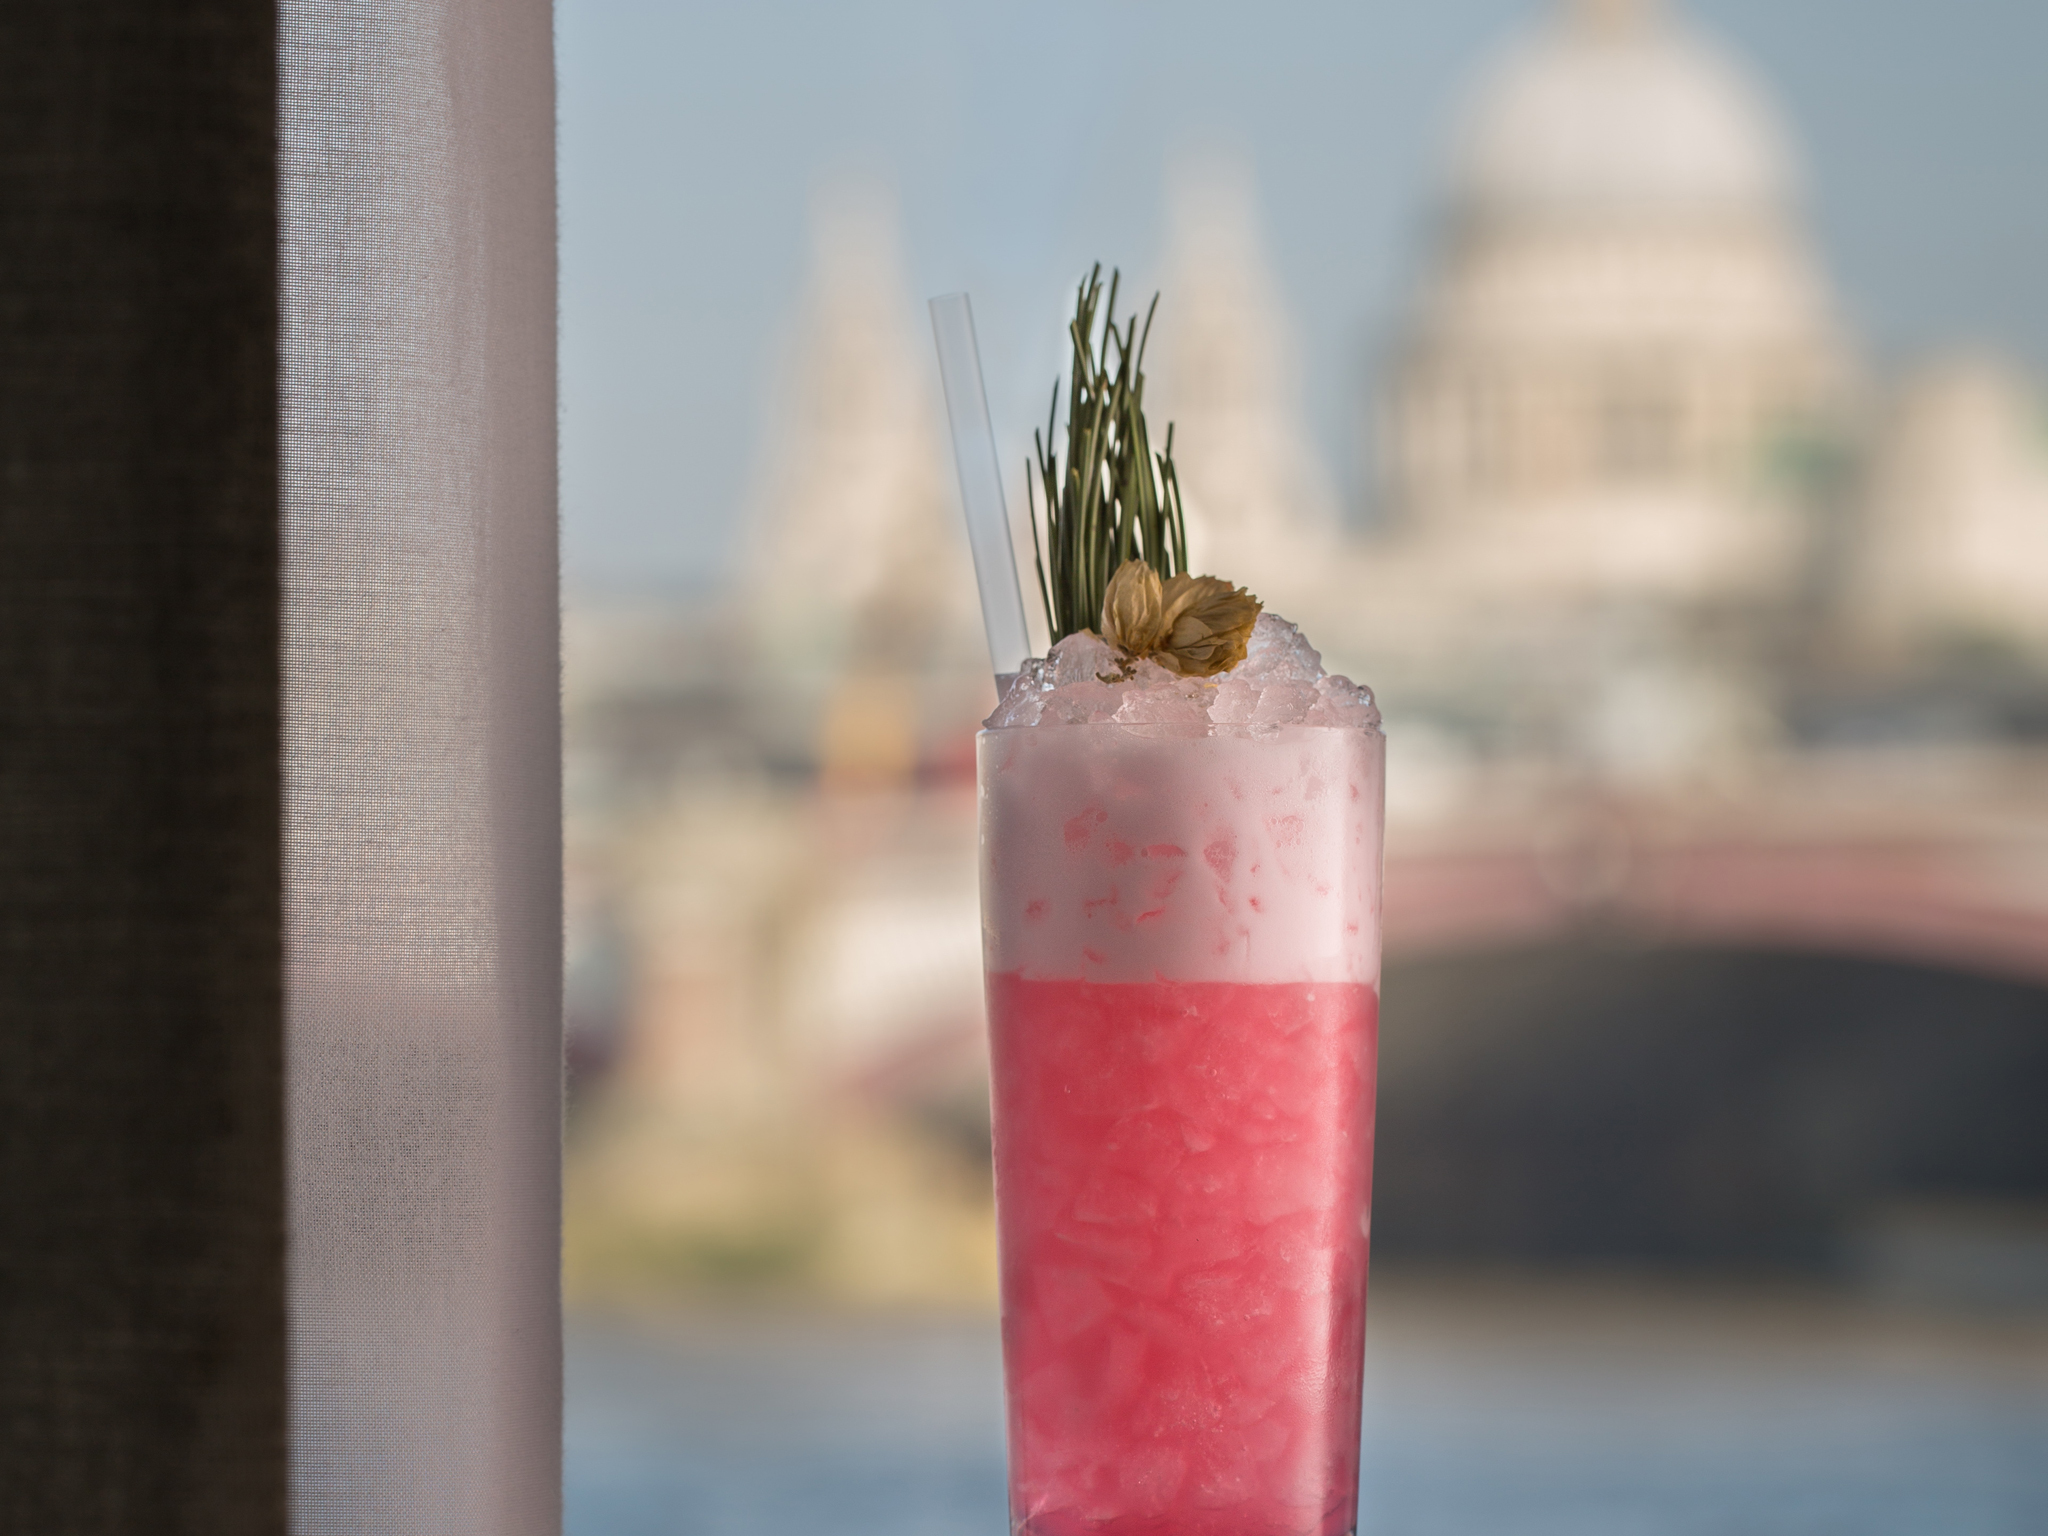 Sip on cocktails at Dandelyan